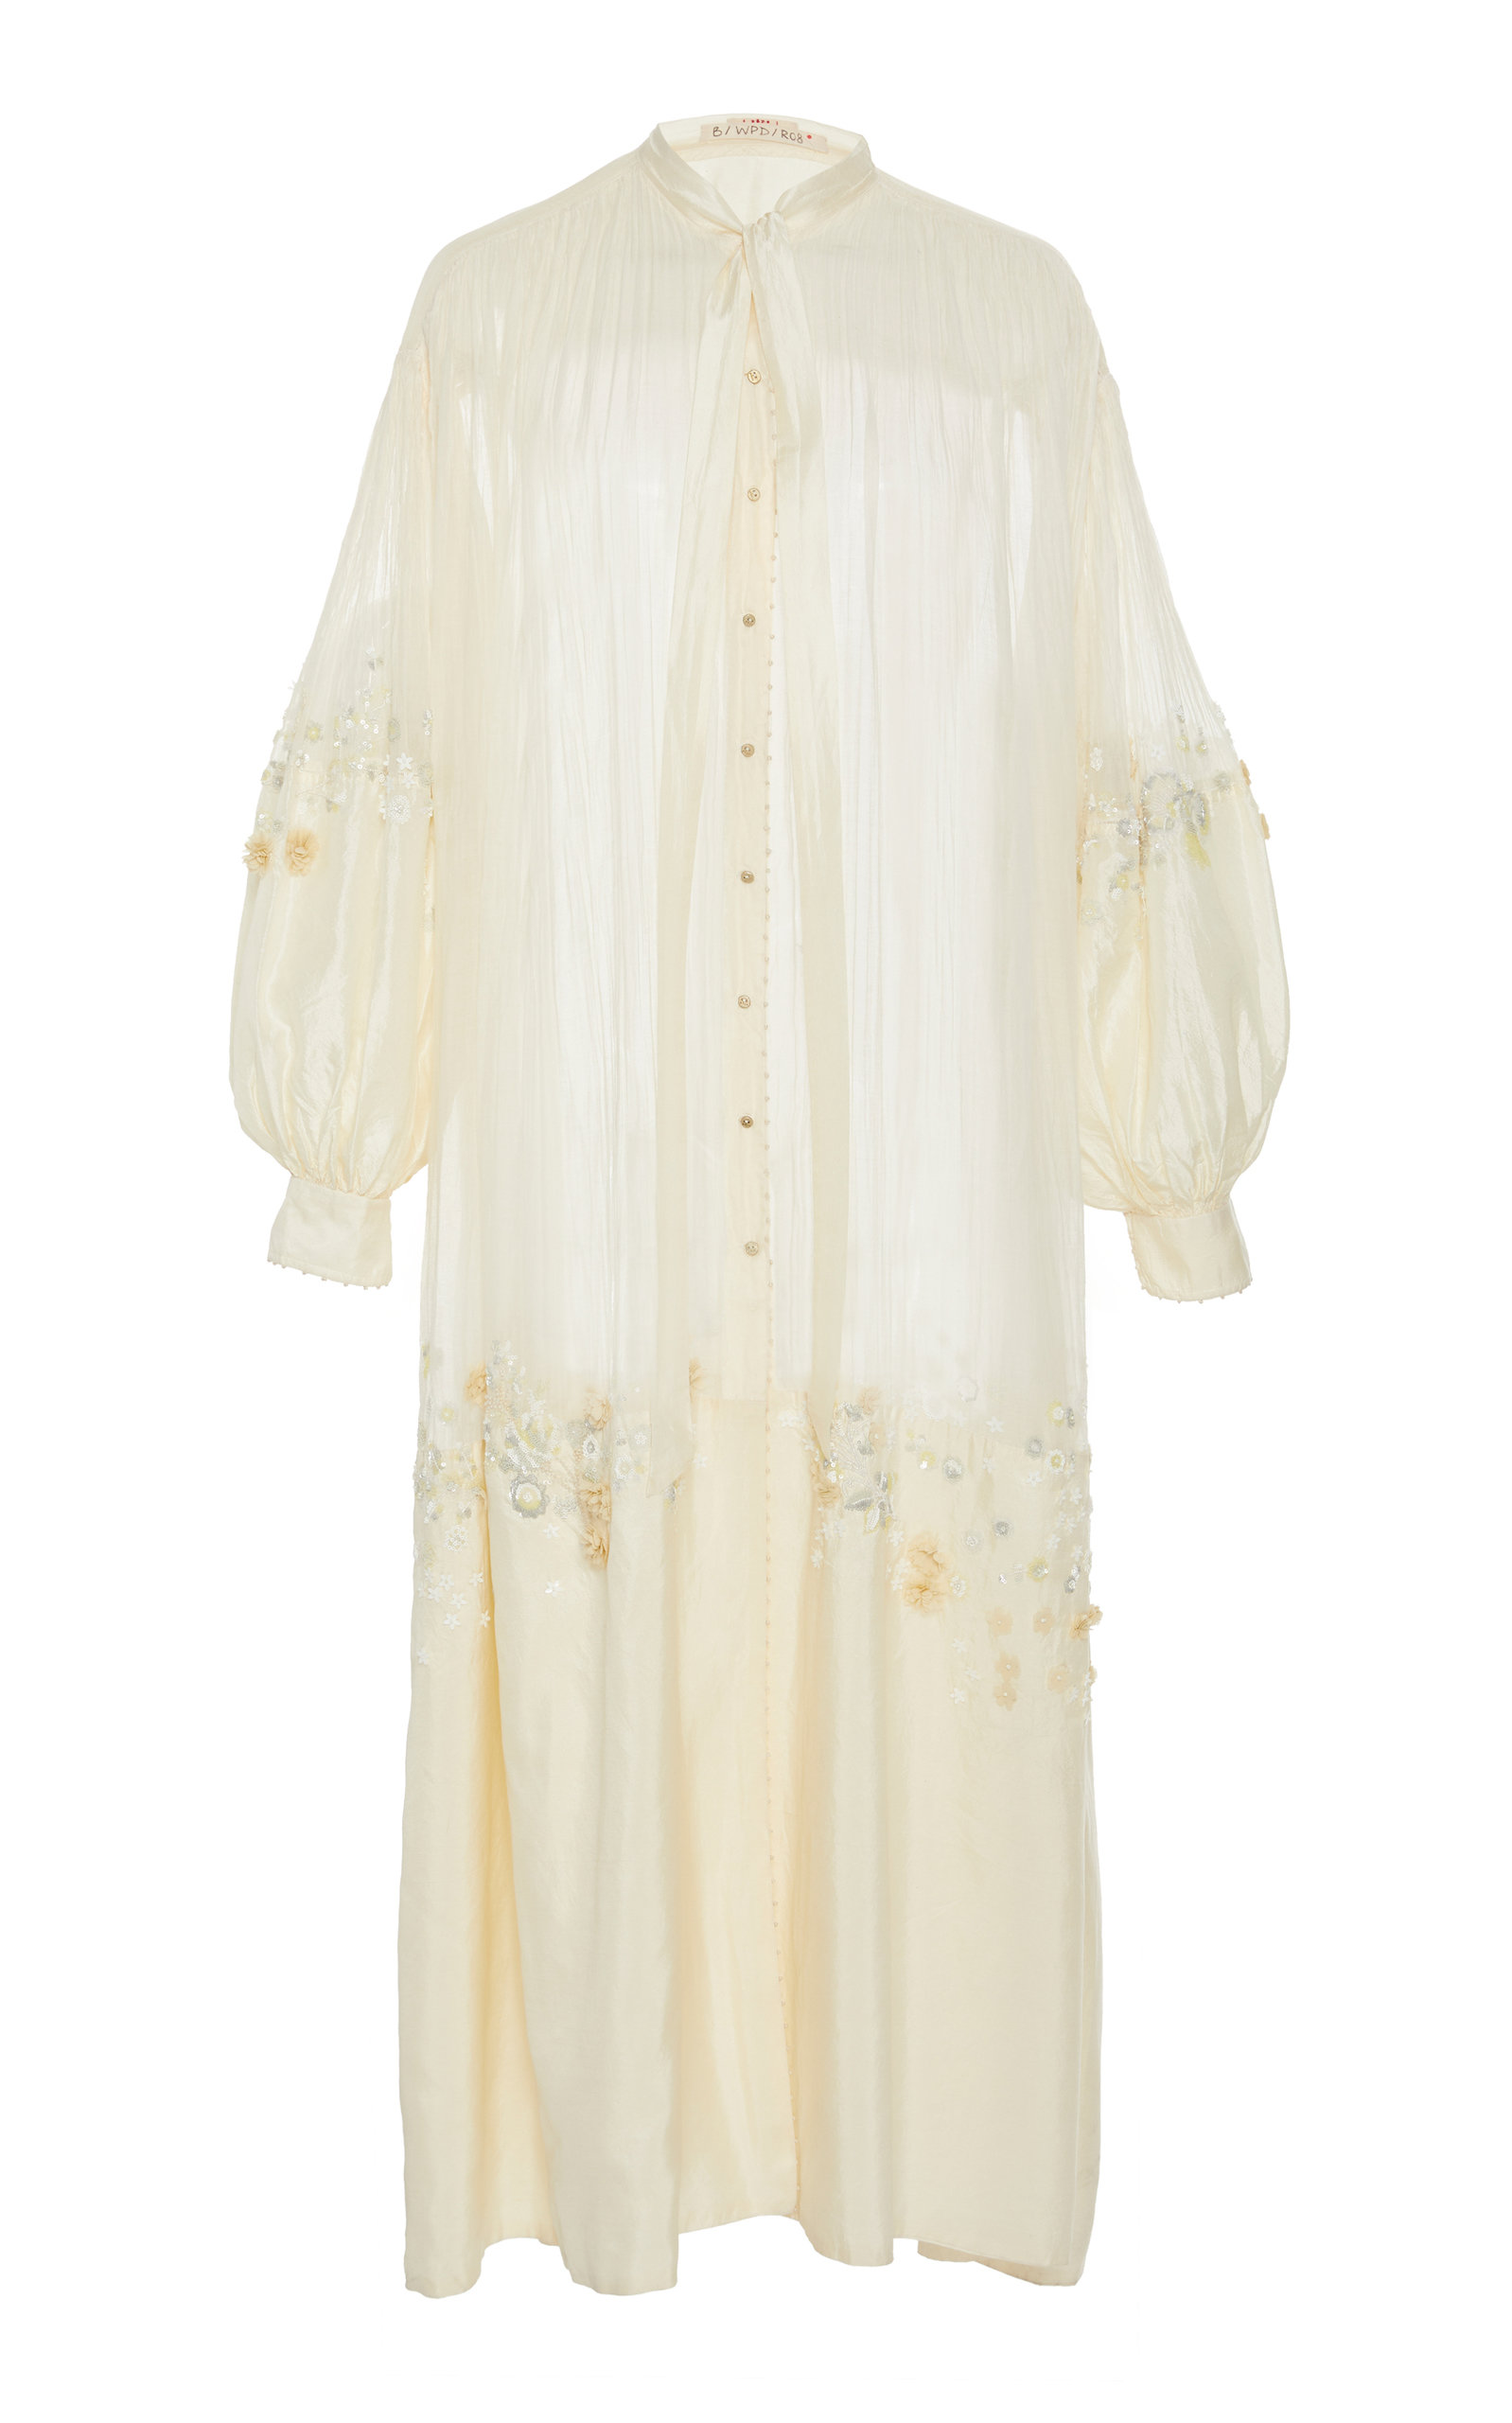 PÉRO Embellished Cotton Dress in White